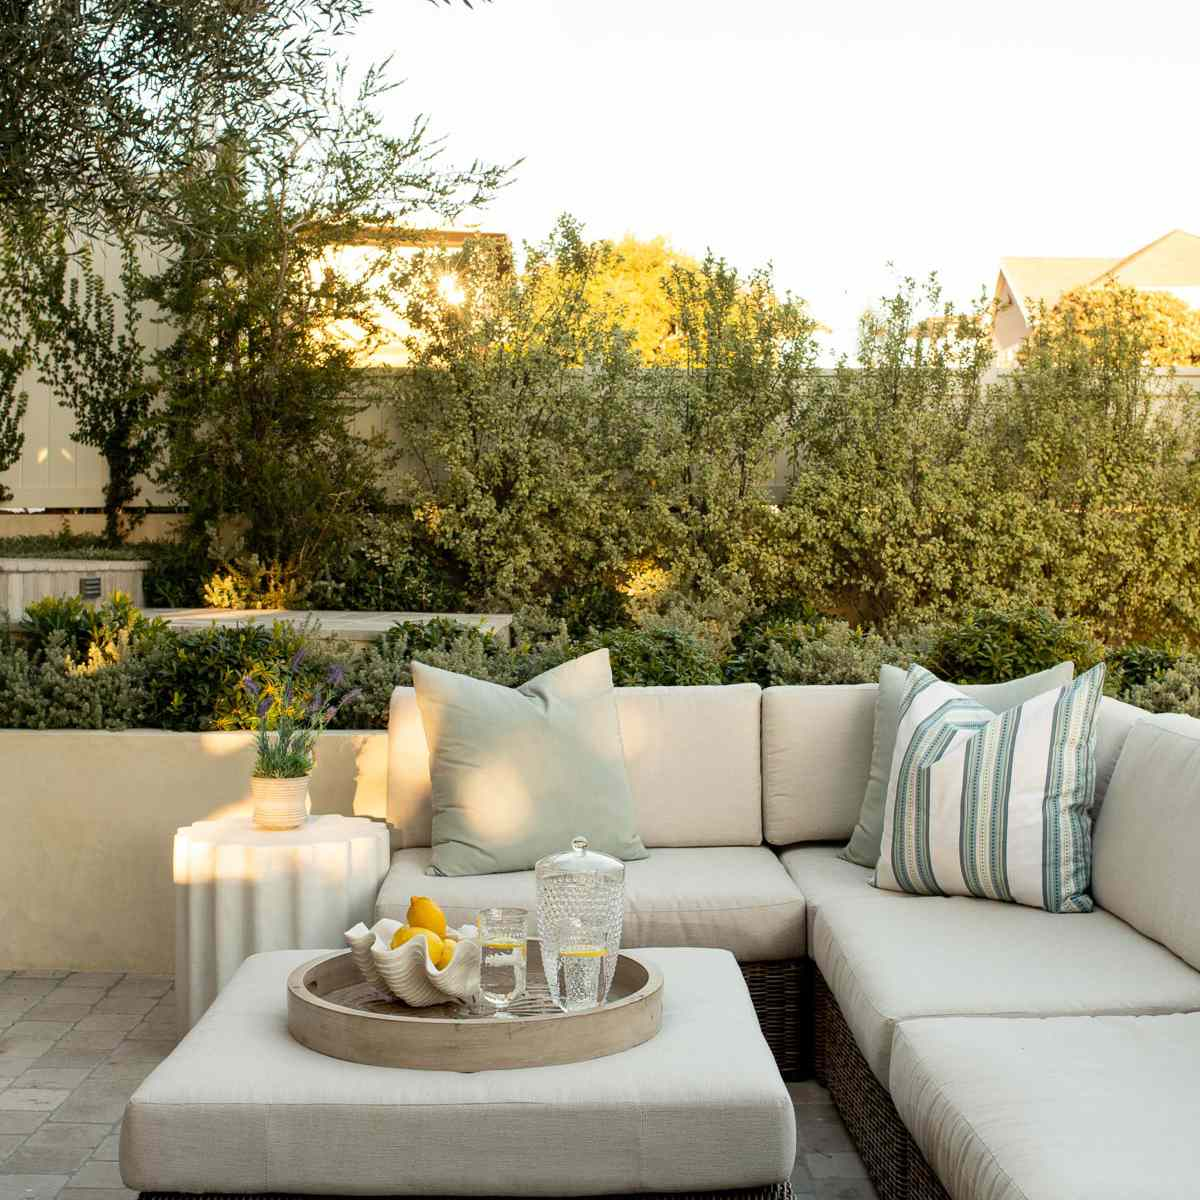 A deck decorated with a large white outdoor couch